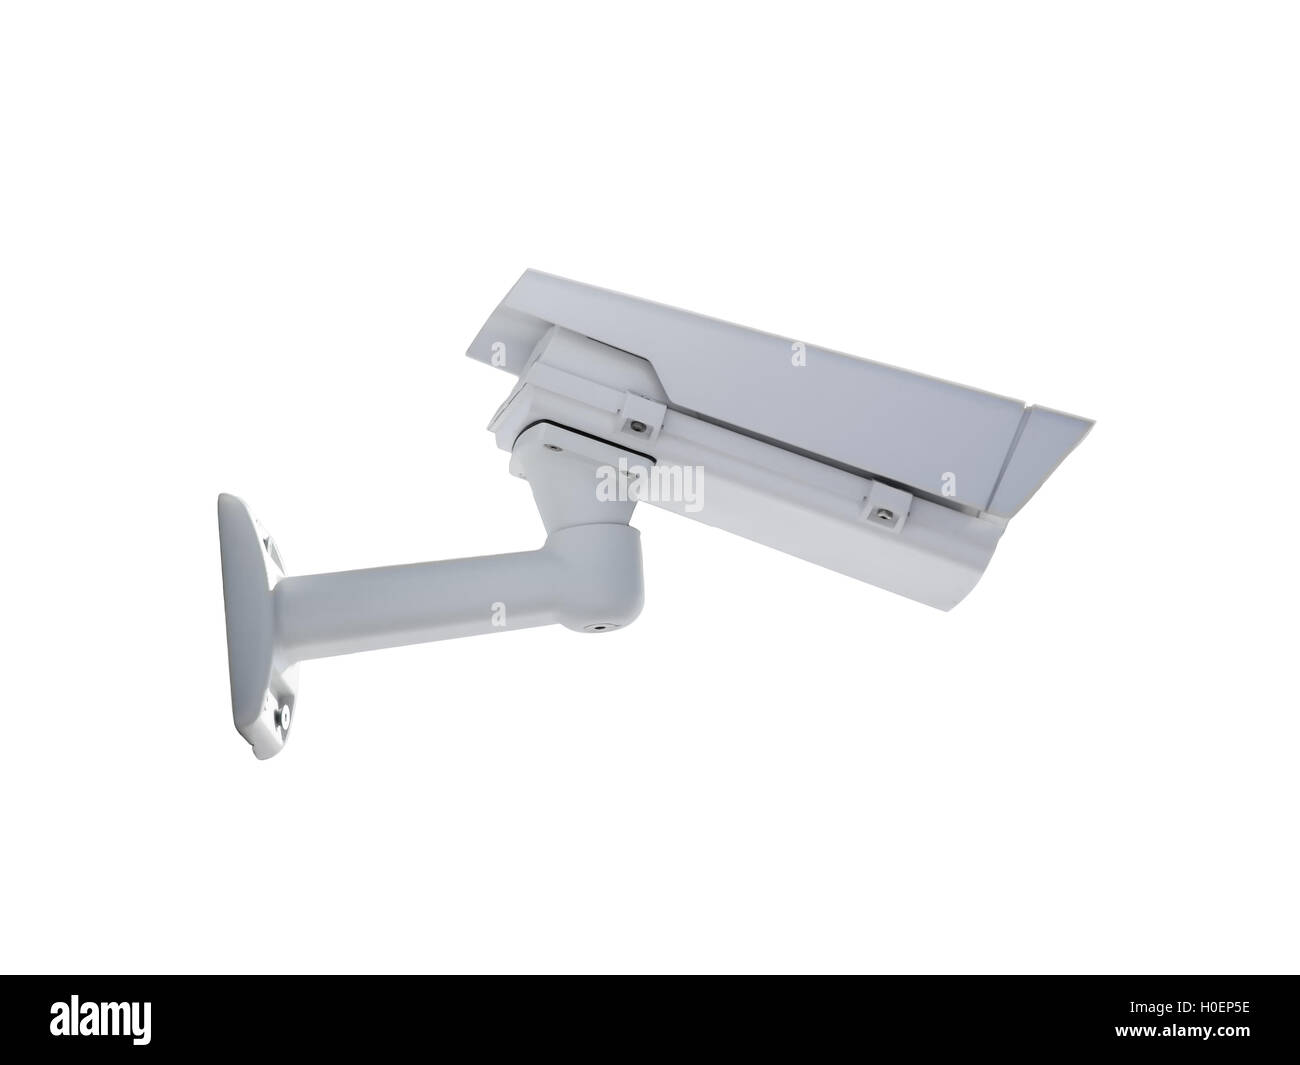 Heavy duty exterior surveillance camera back view isolated on white background - Stock Image